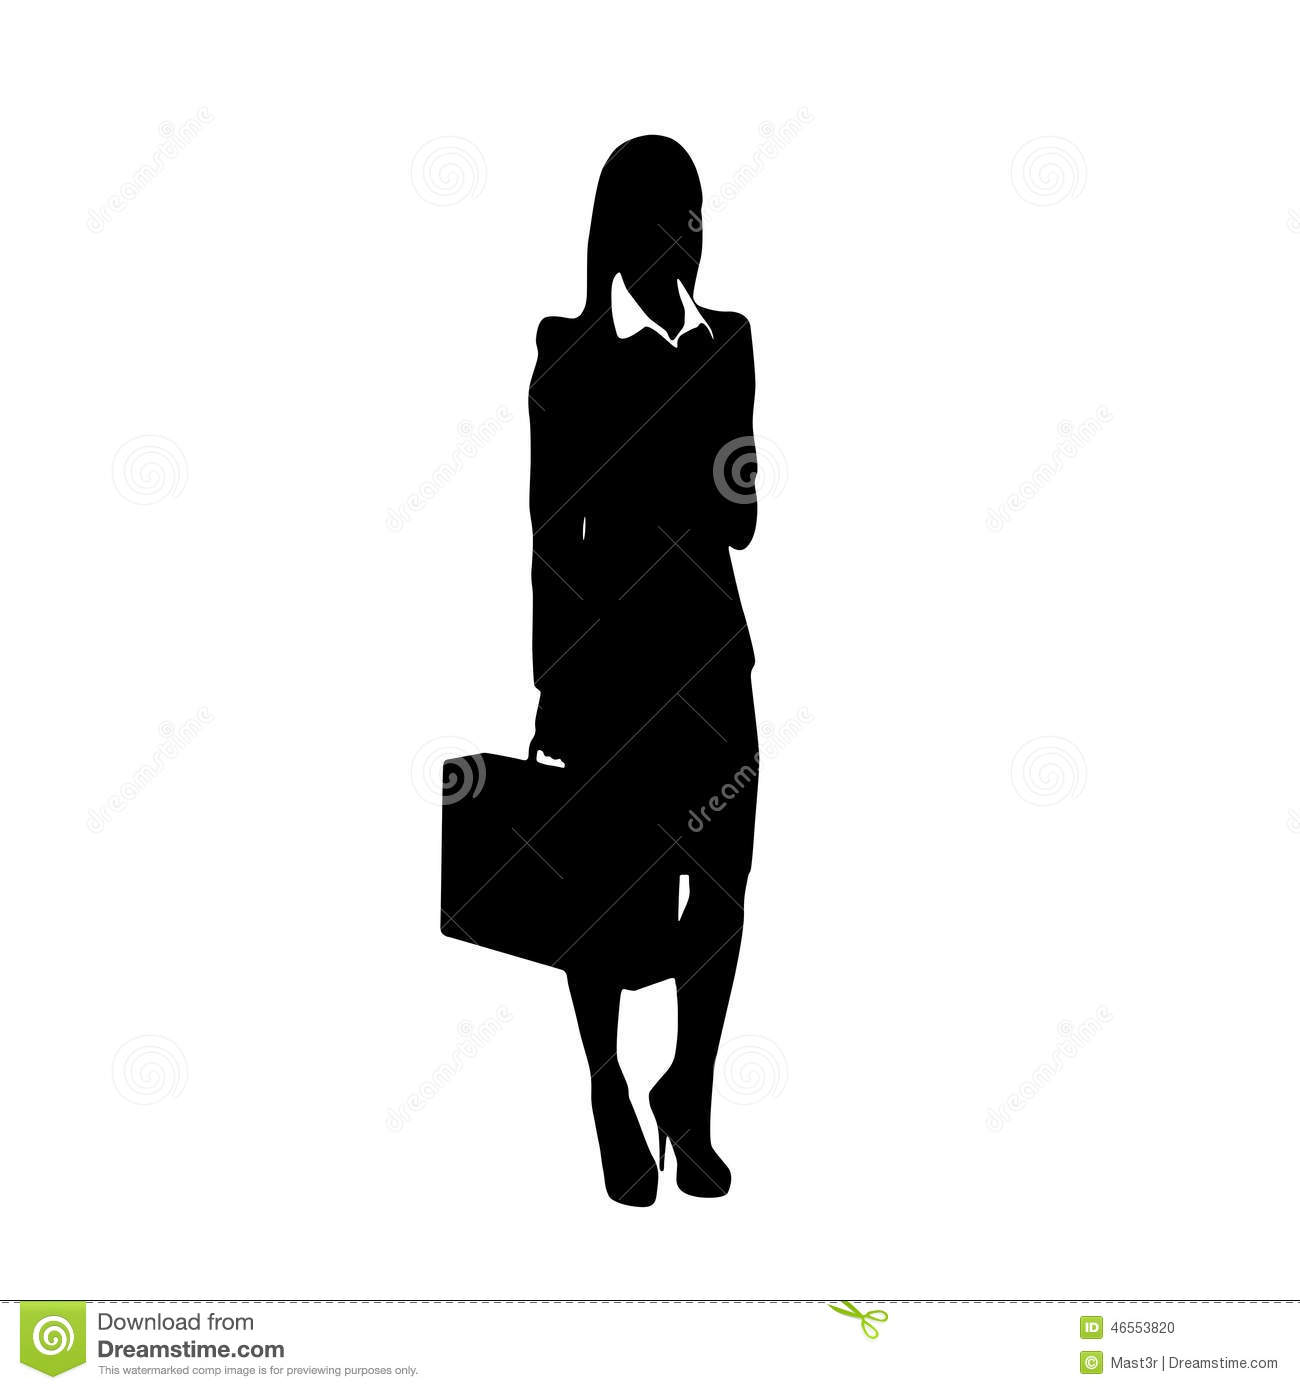 business-woman-black-silhouette-hold-briefcase-standing-full-length-over-white-background-46553820.jpg